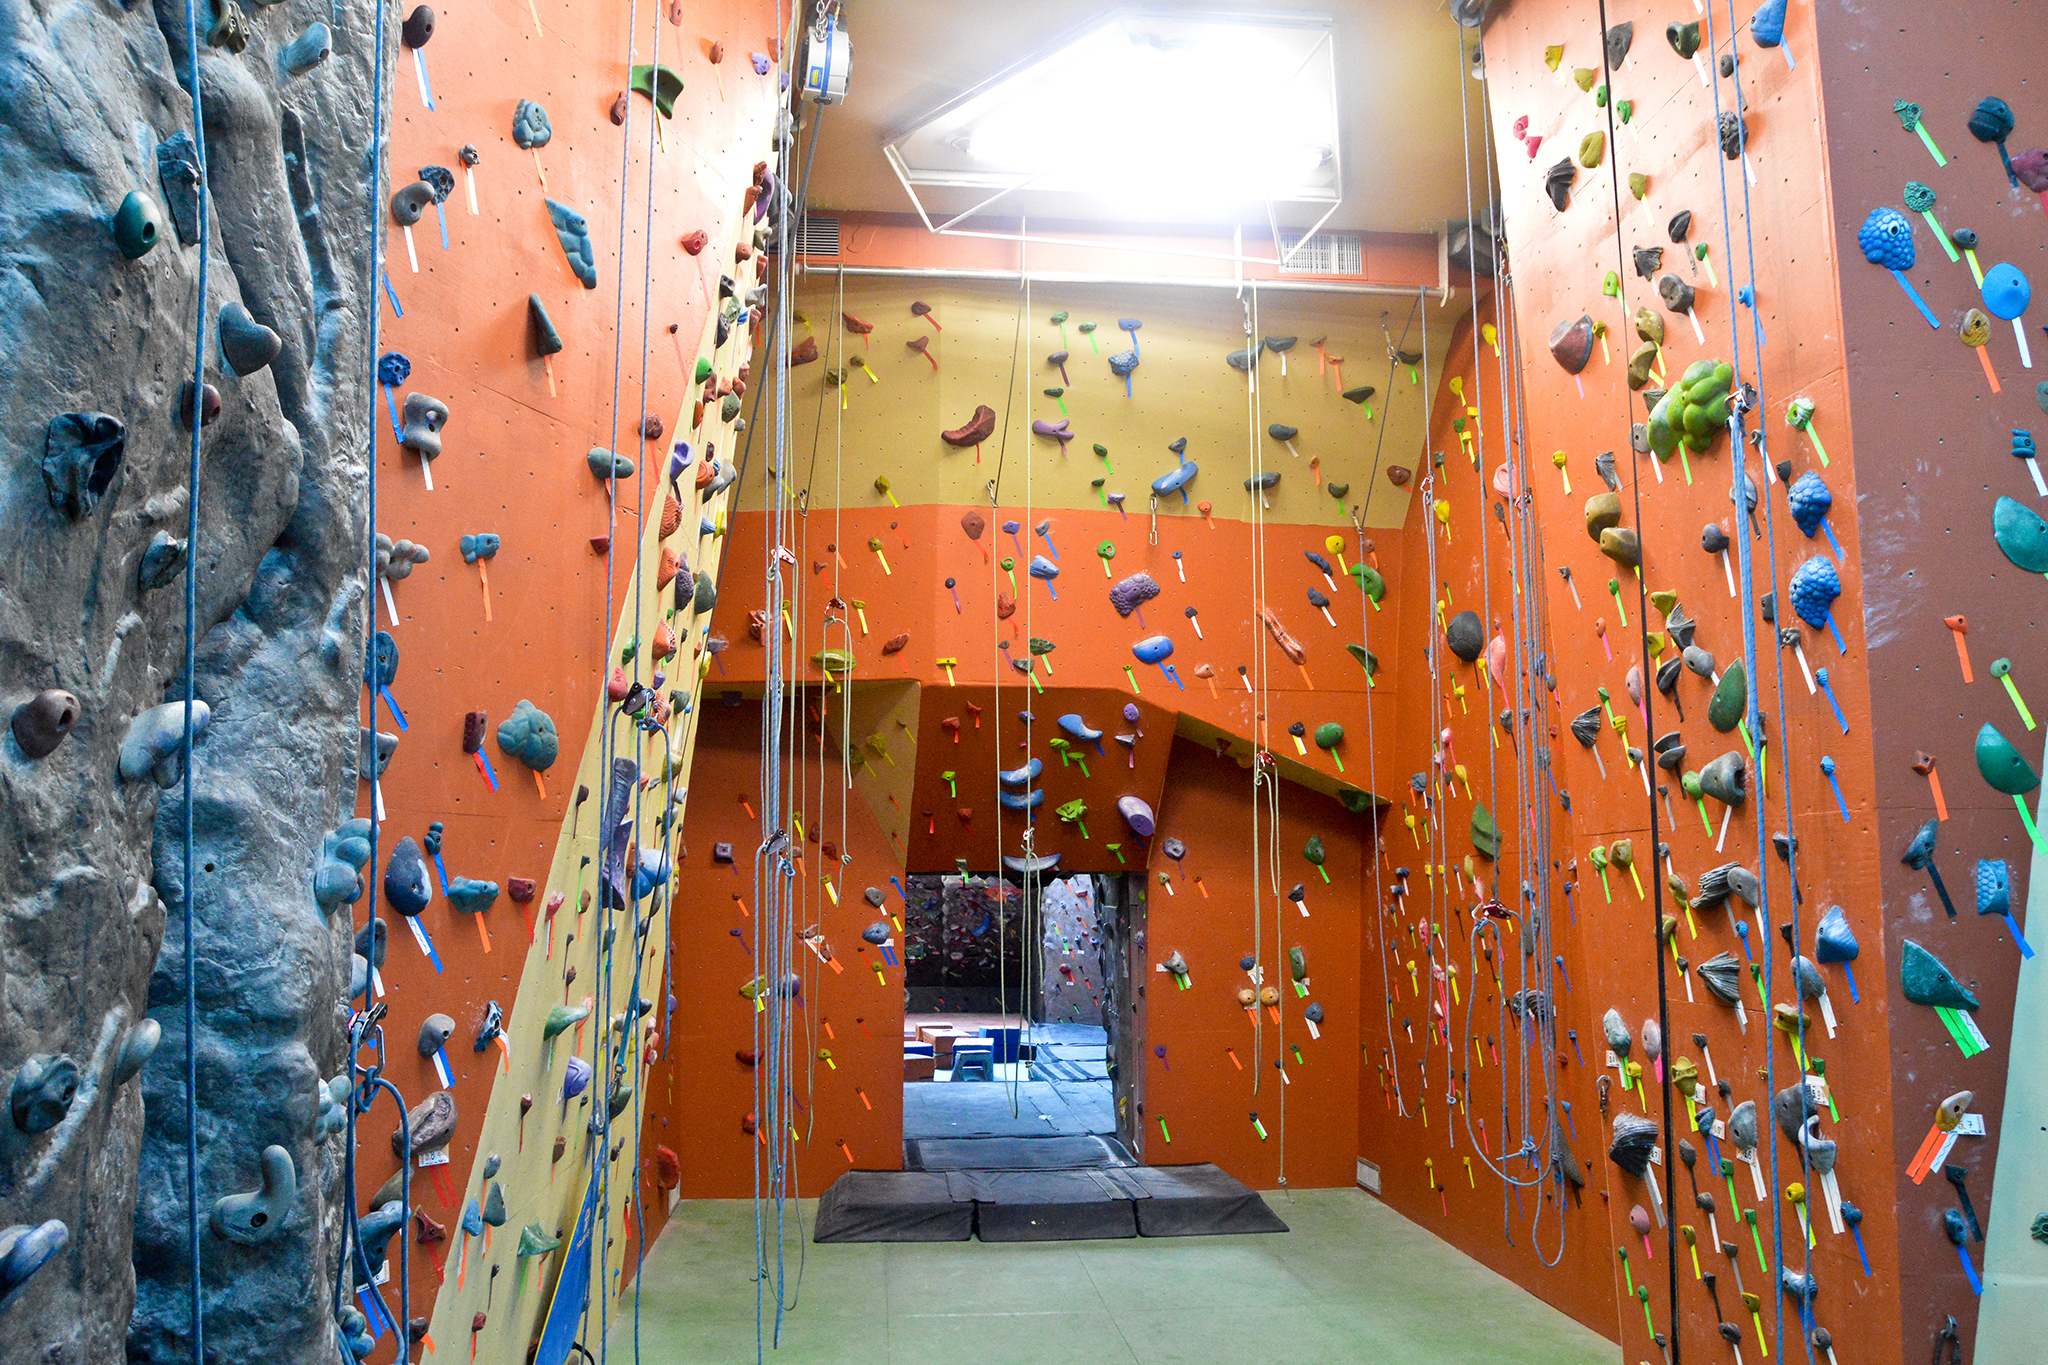 Best places to go outdoor or indoor rock climbing in nyc for Things to do with kids in manhattan